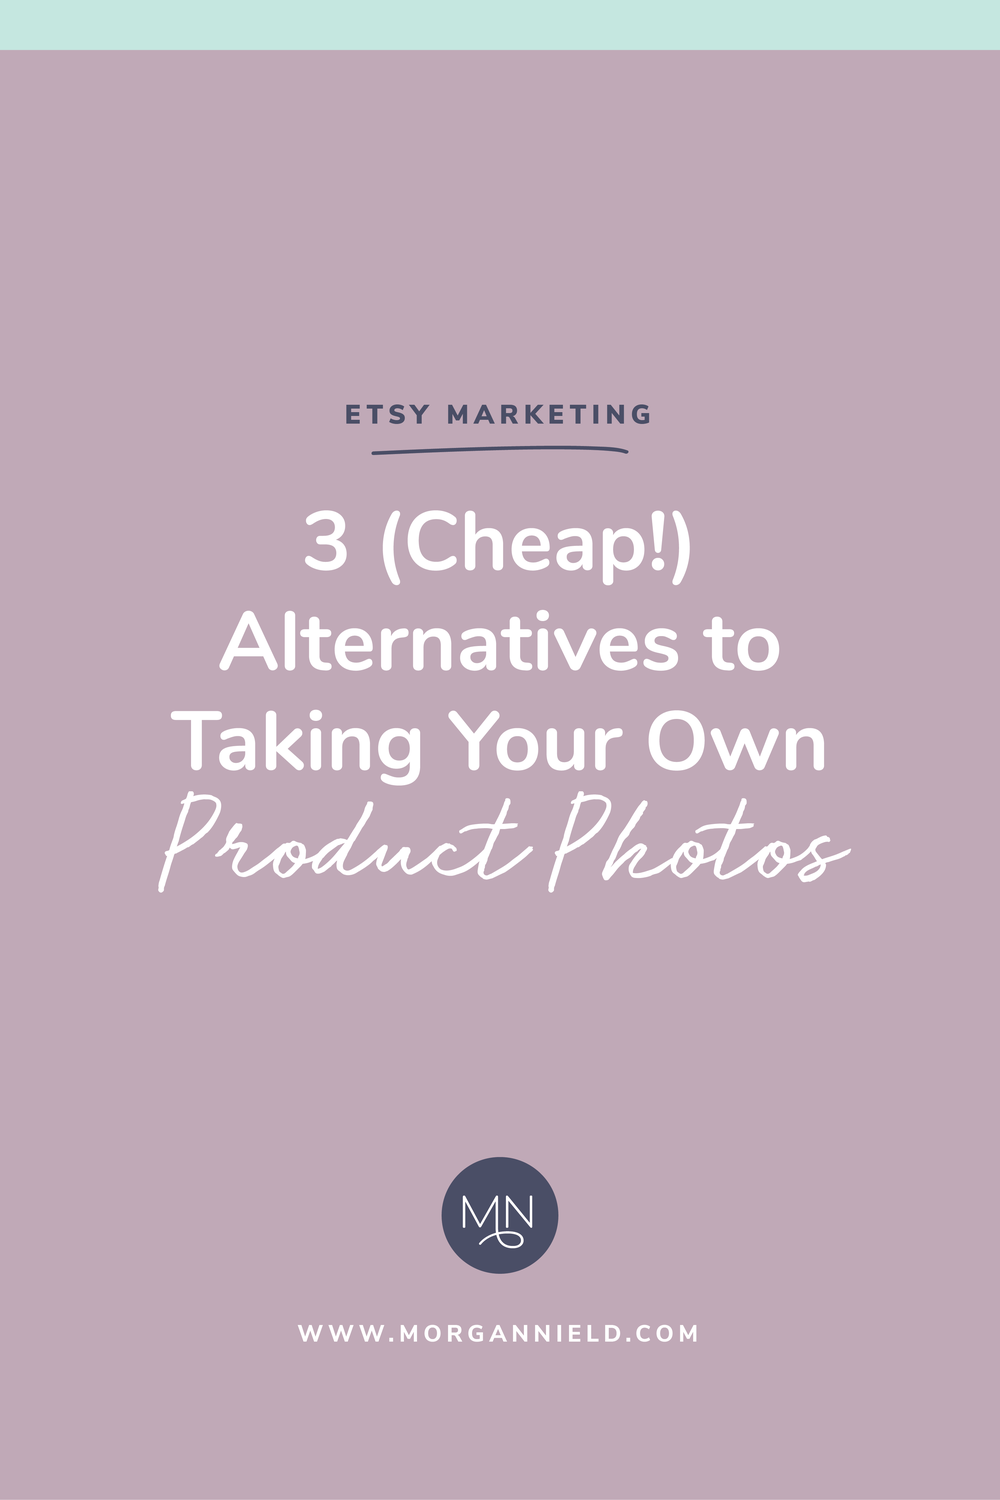 Believe it or not, you DON'T have to be an expert photographer (or have any photography skills whatsoever!) to get beautiful product photos for your shop. Today I'm sharing 3 alternatives to taking your own photos >>